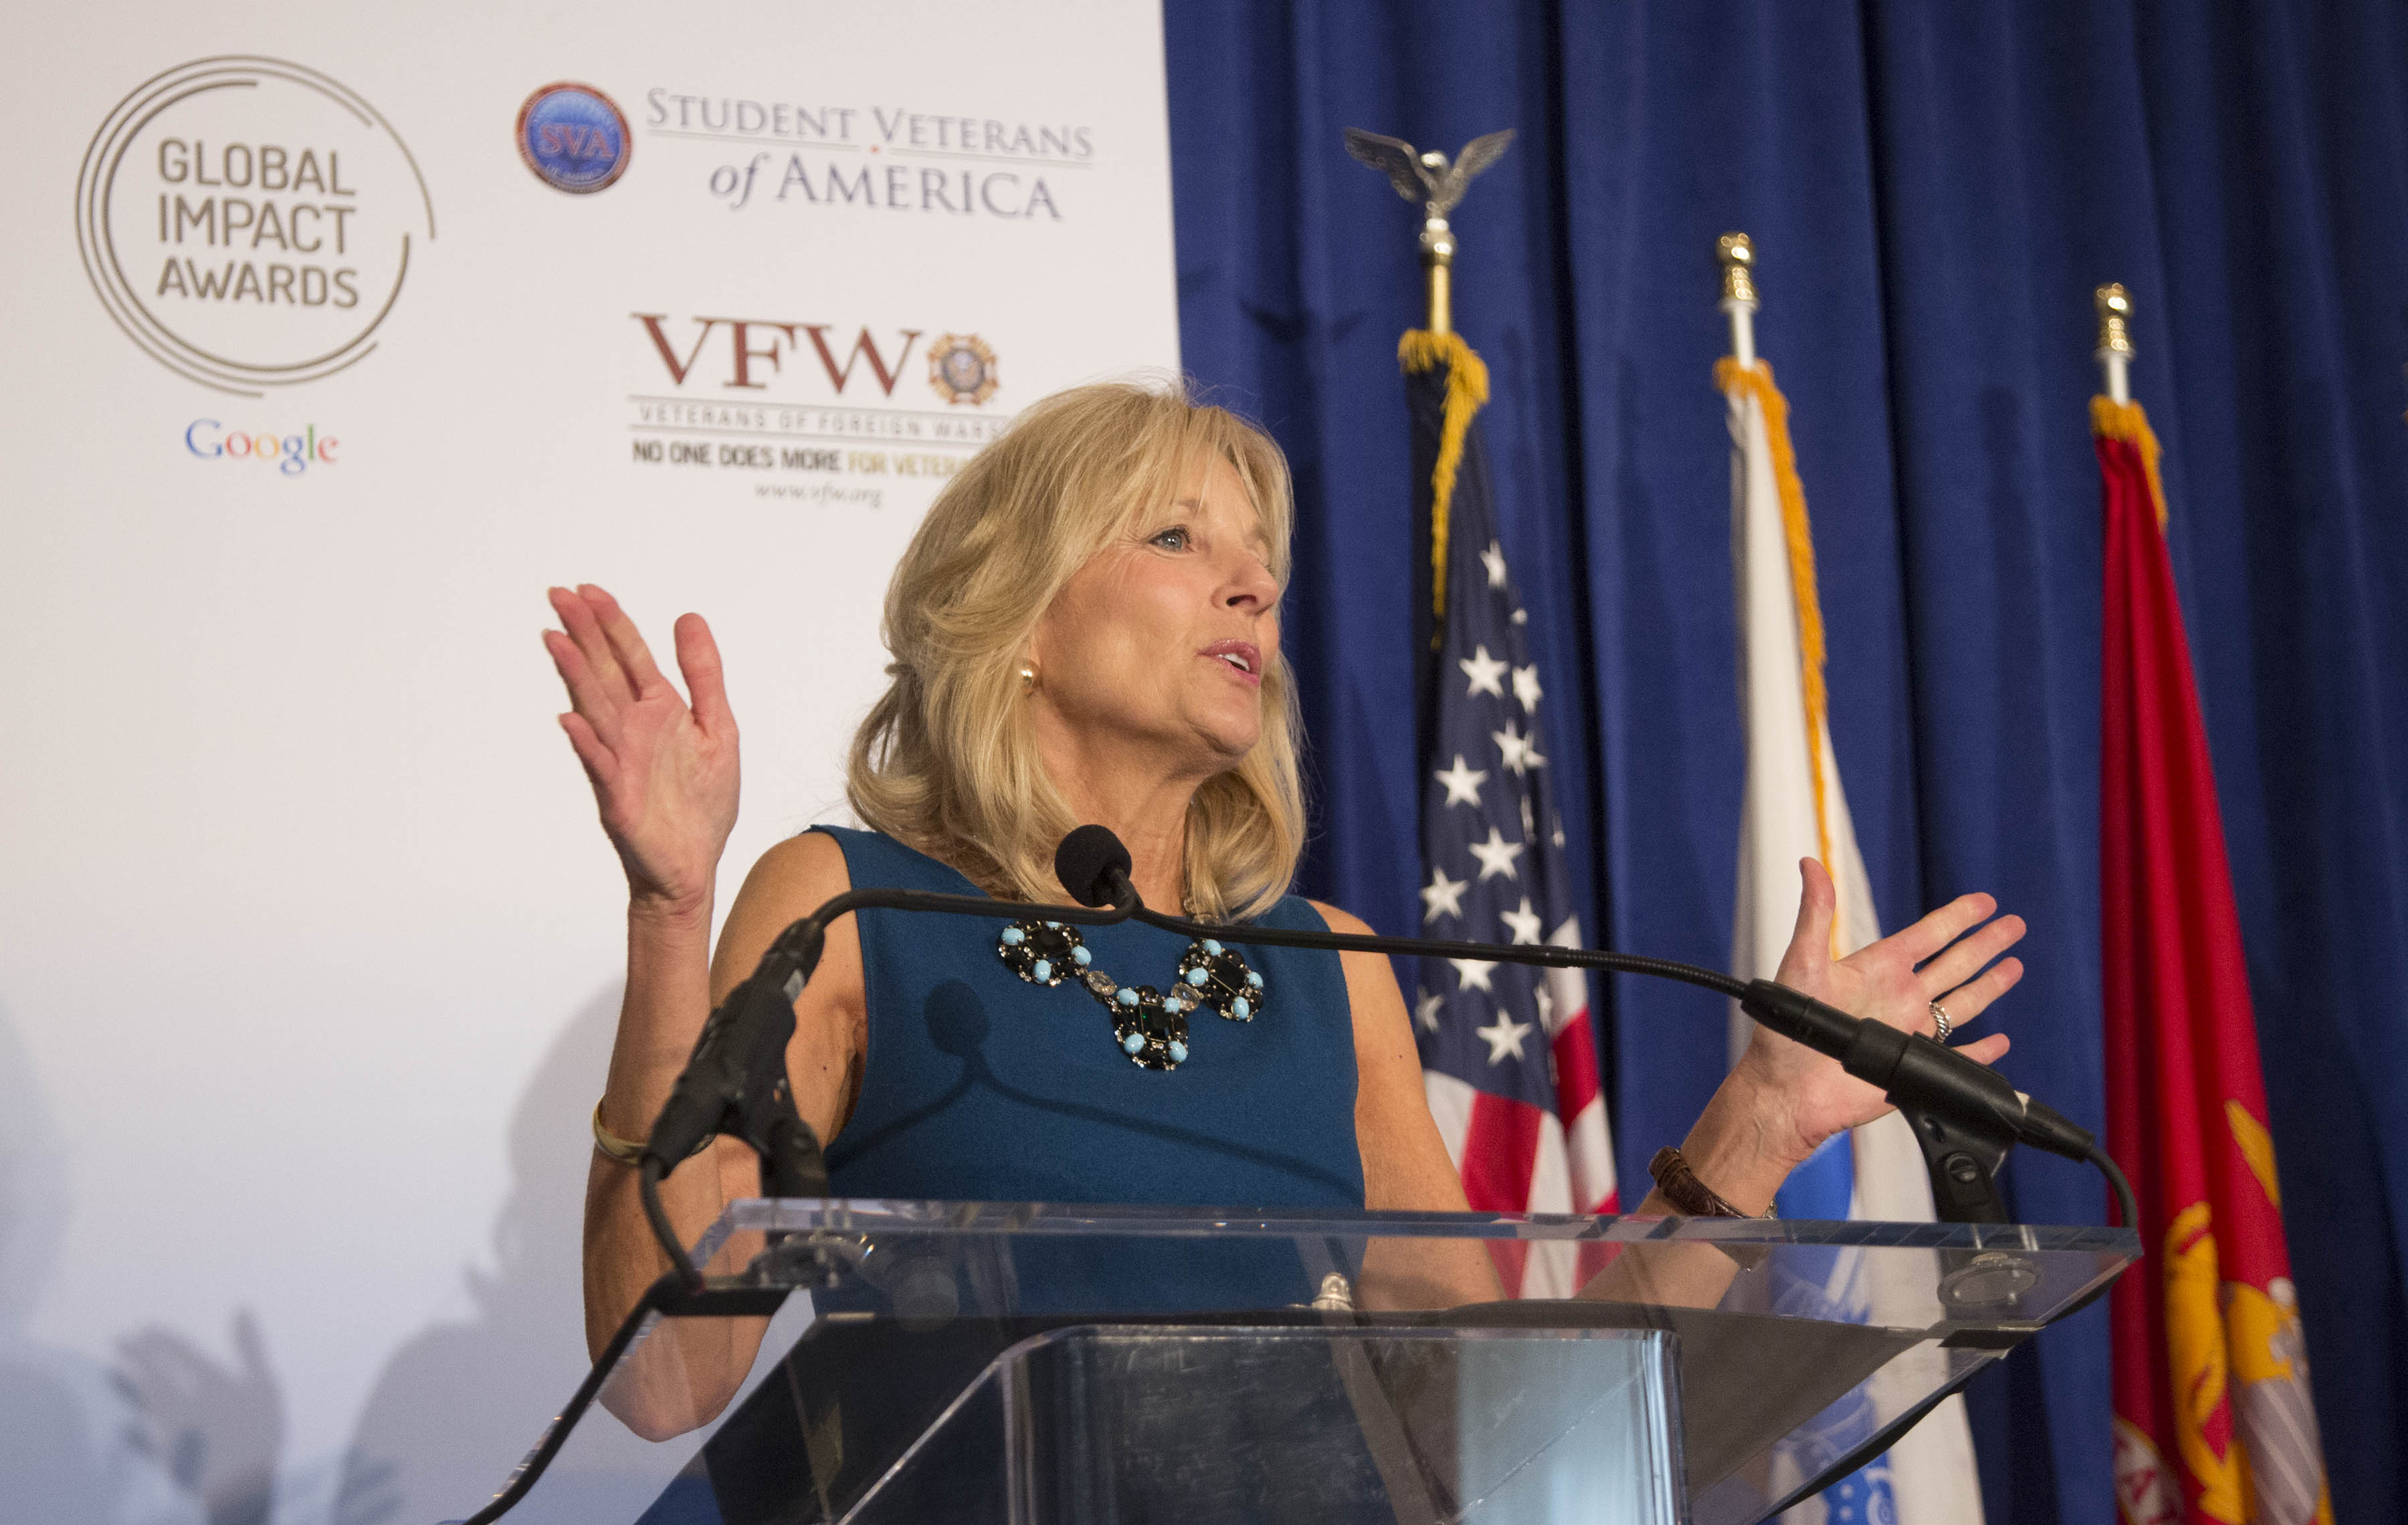 Dr. Biden delivers opening remarks at Google's veterans' higher education event, Washington, D.C., November 13, 2013